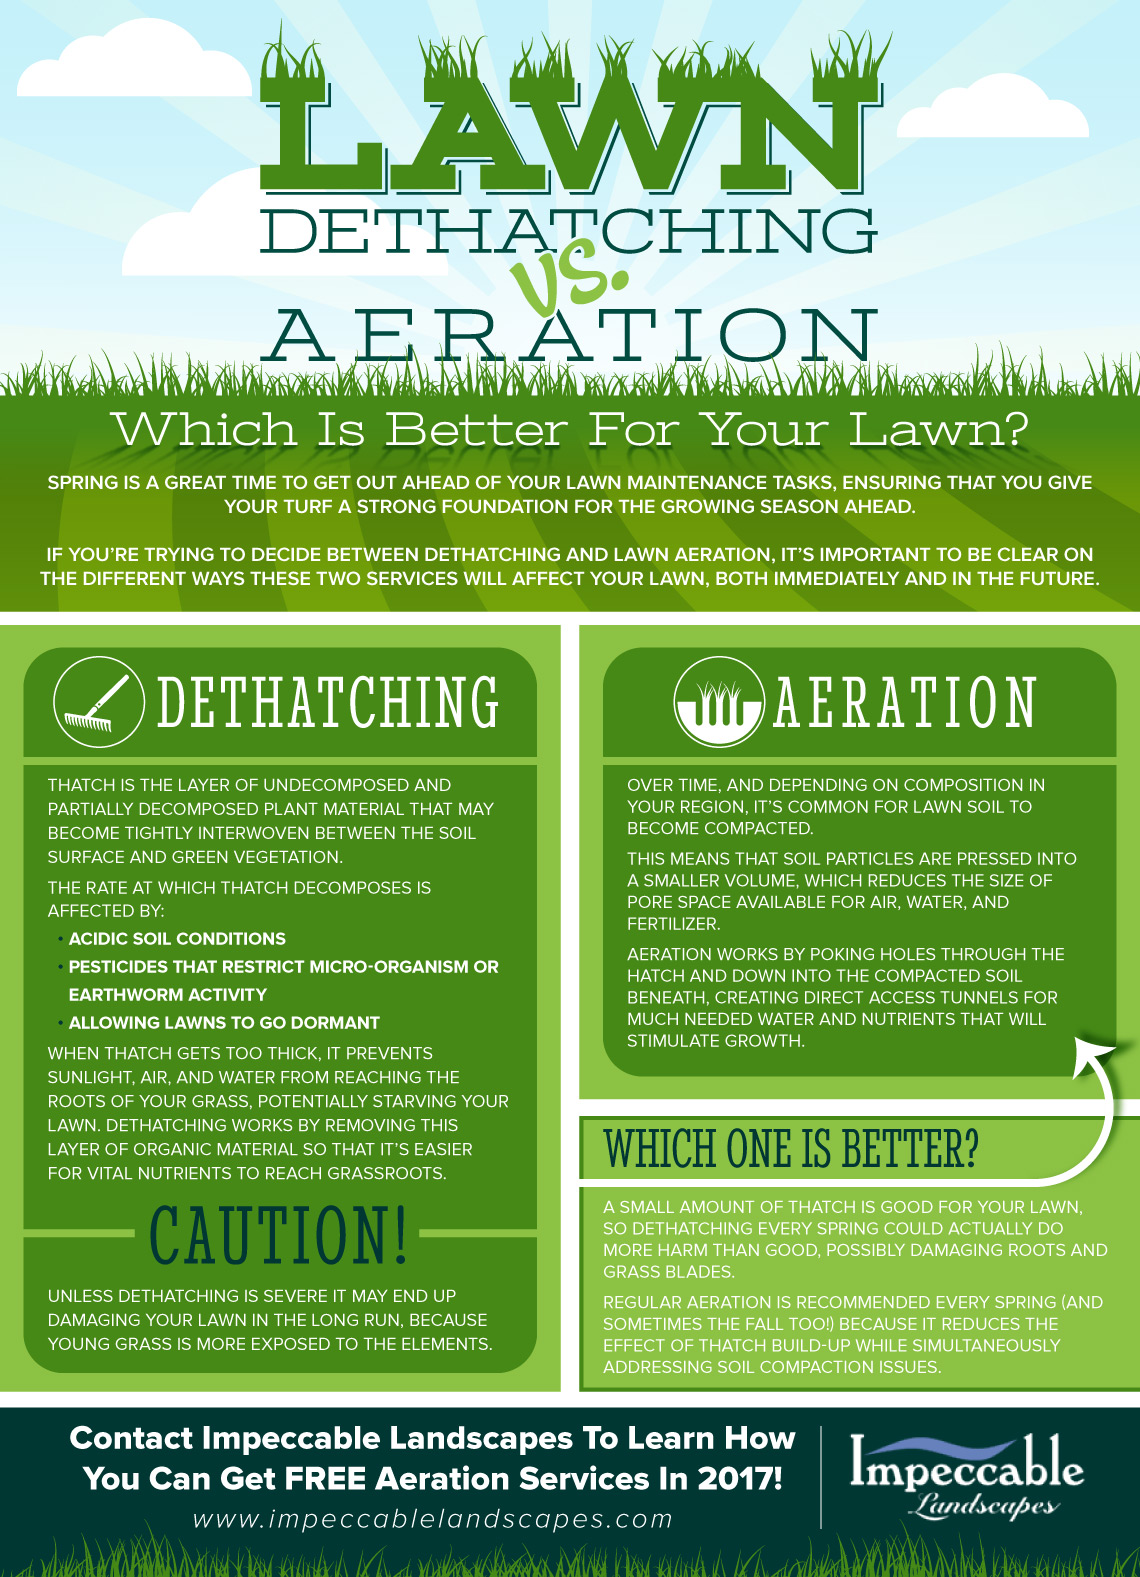 Dethatching vs lawn aeration inforgraphic from Impeccable Landscapes.